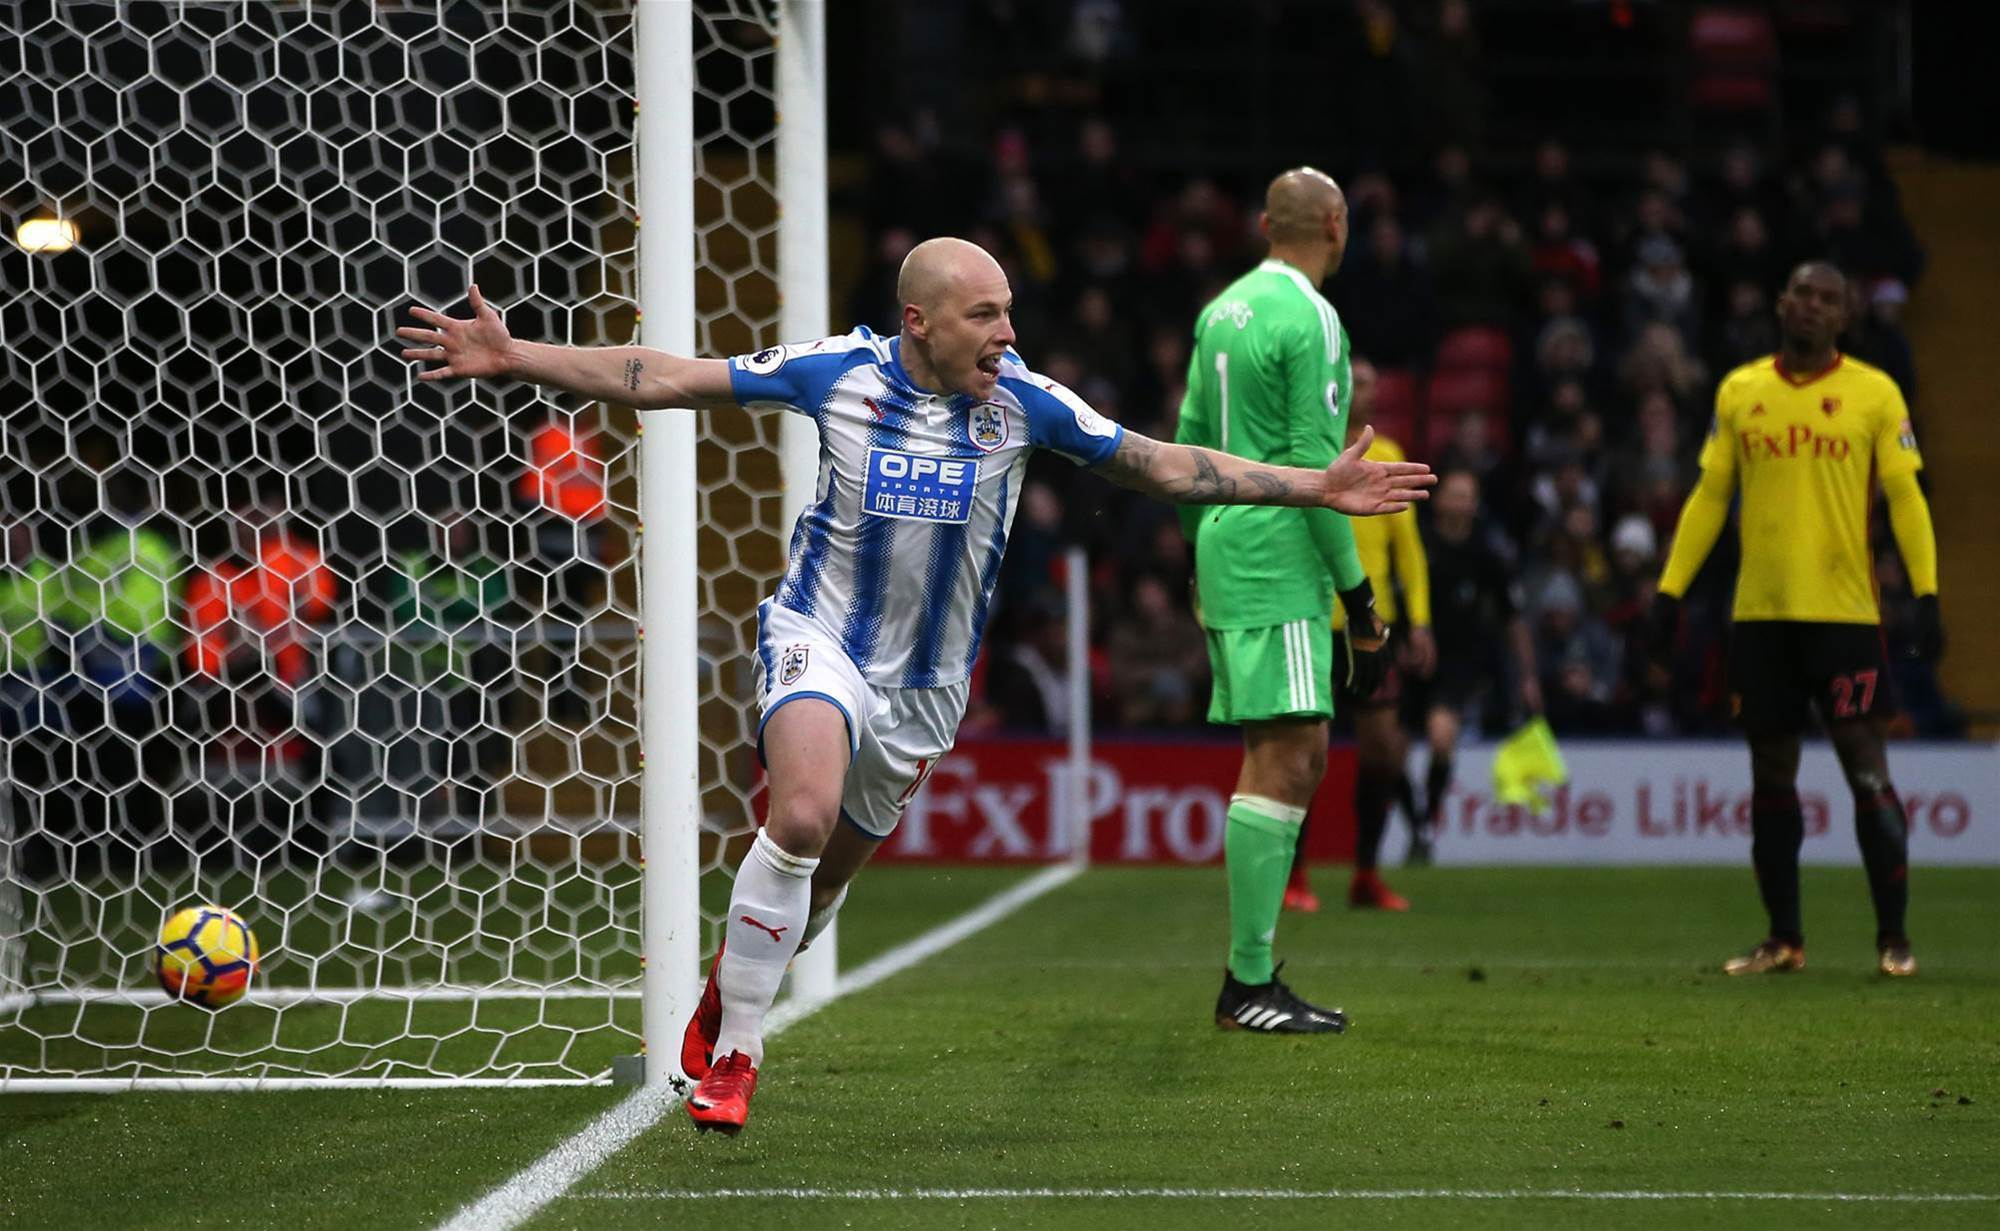 Absolute scenes: Mooy brace pics